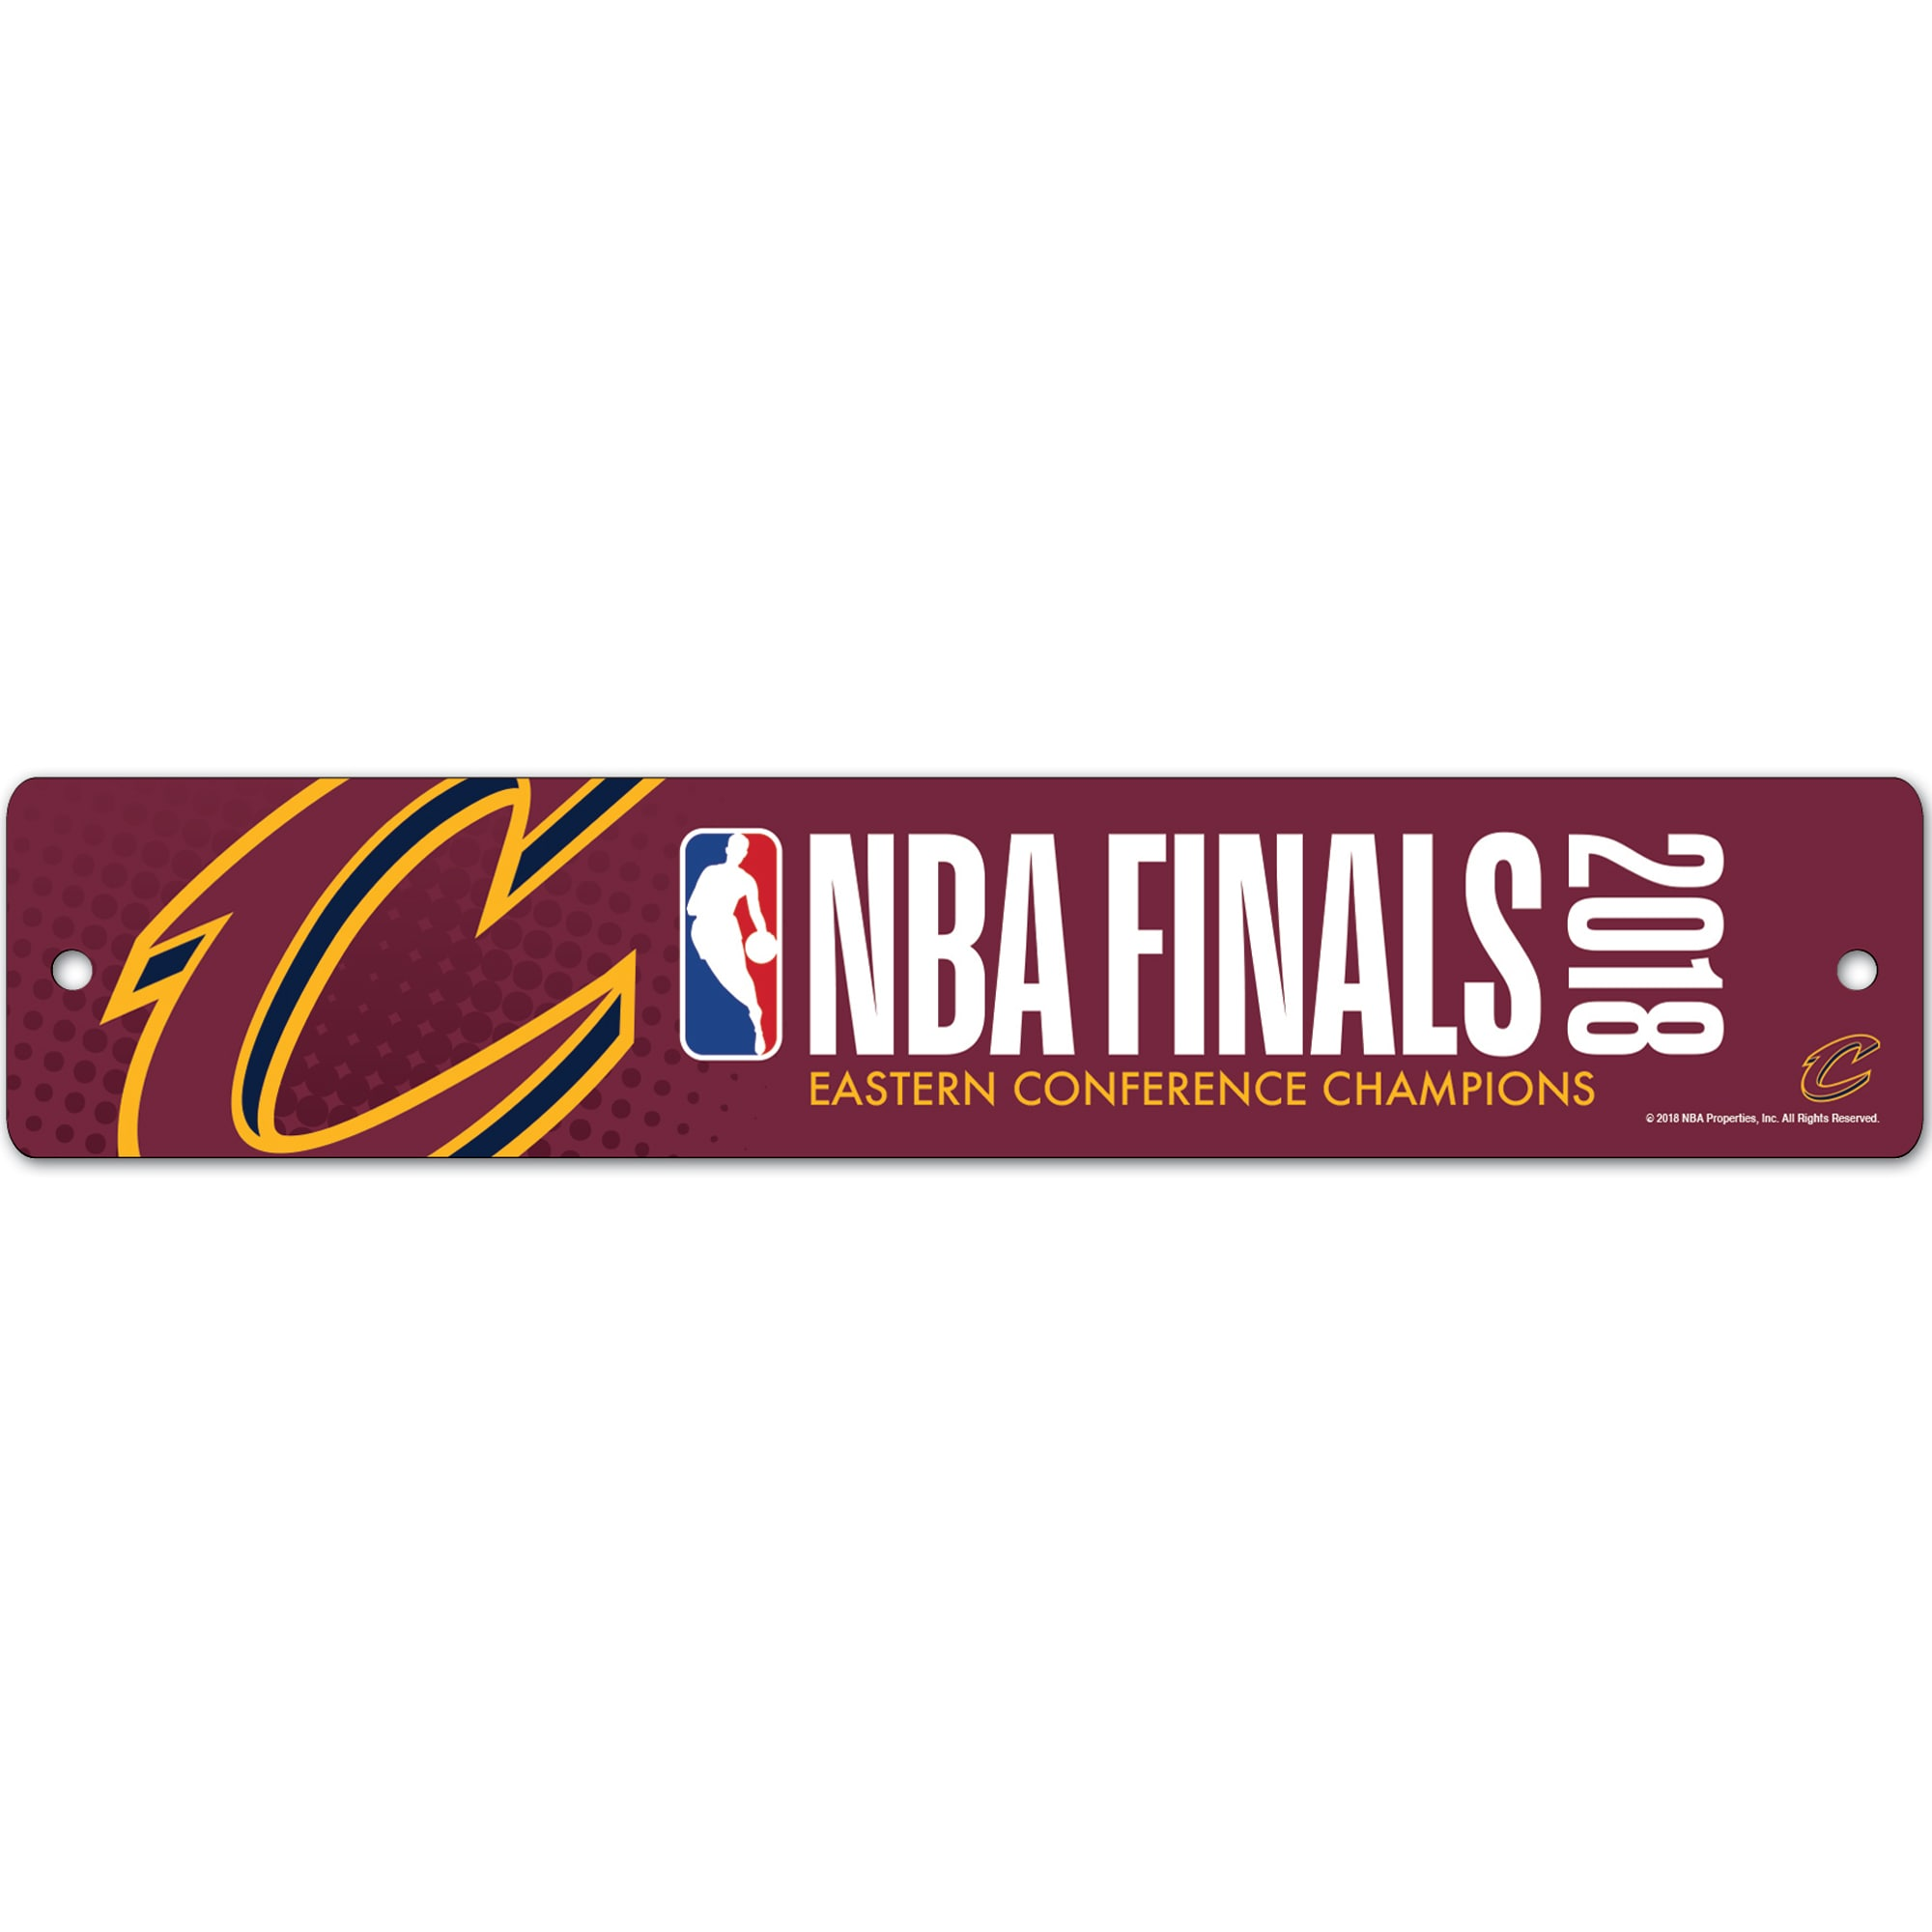 """Cleveland Cavaliers WinCraft 2018 Eastern Conference Champions 3.75"""" x 19"""" Street Sign"""